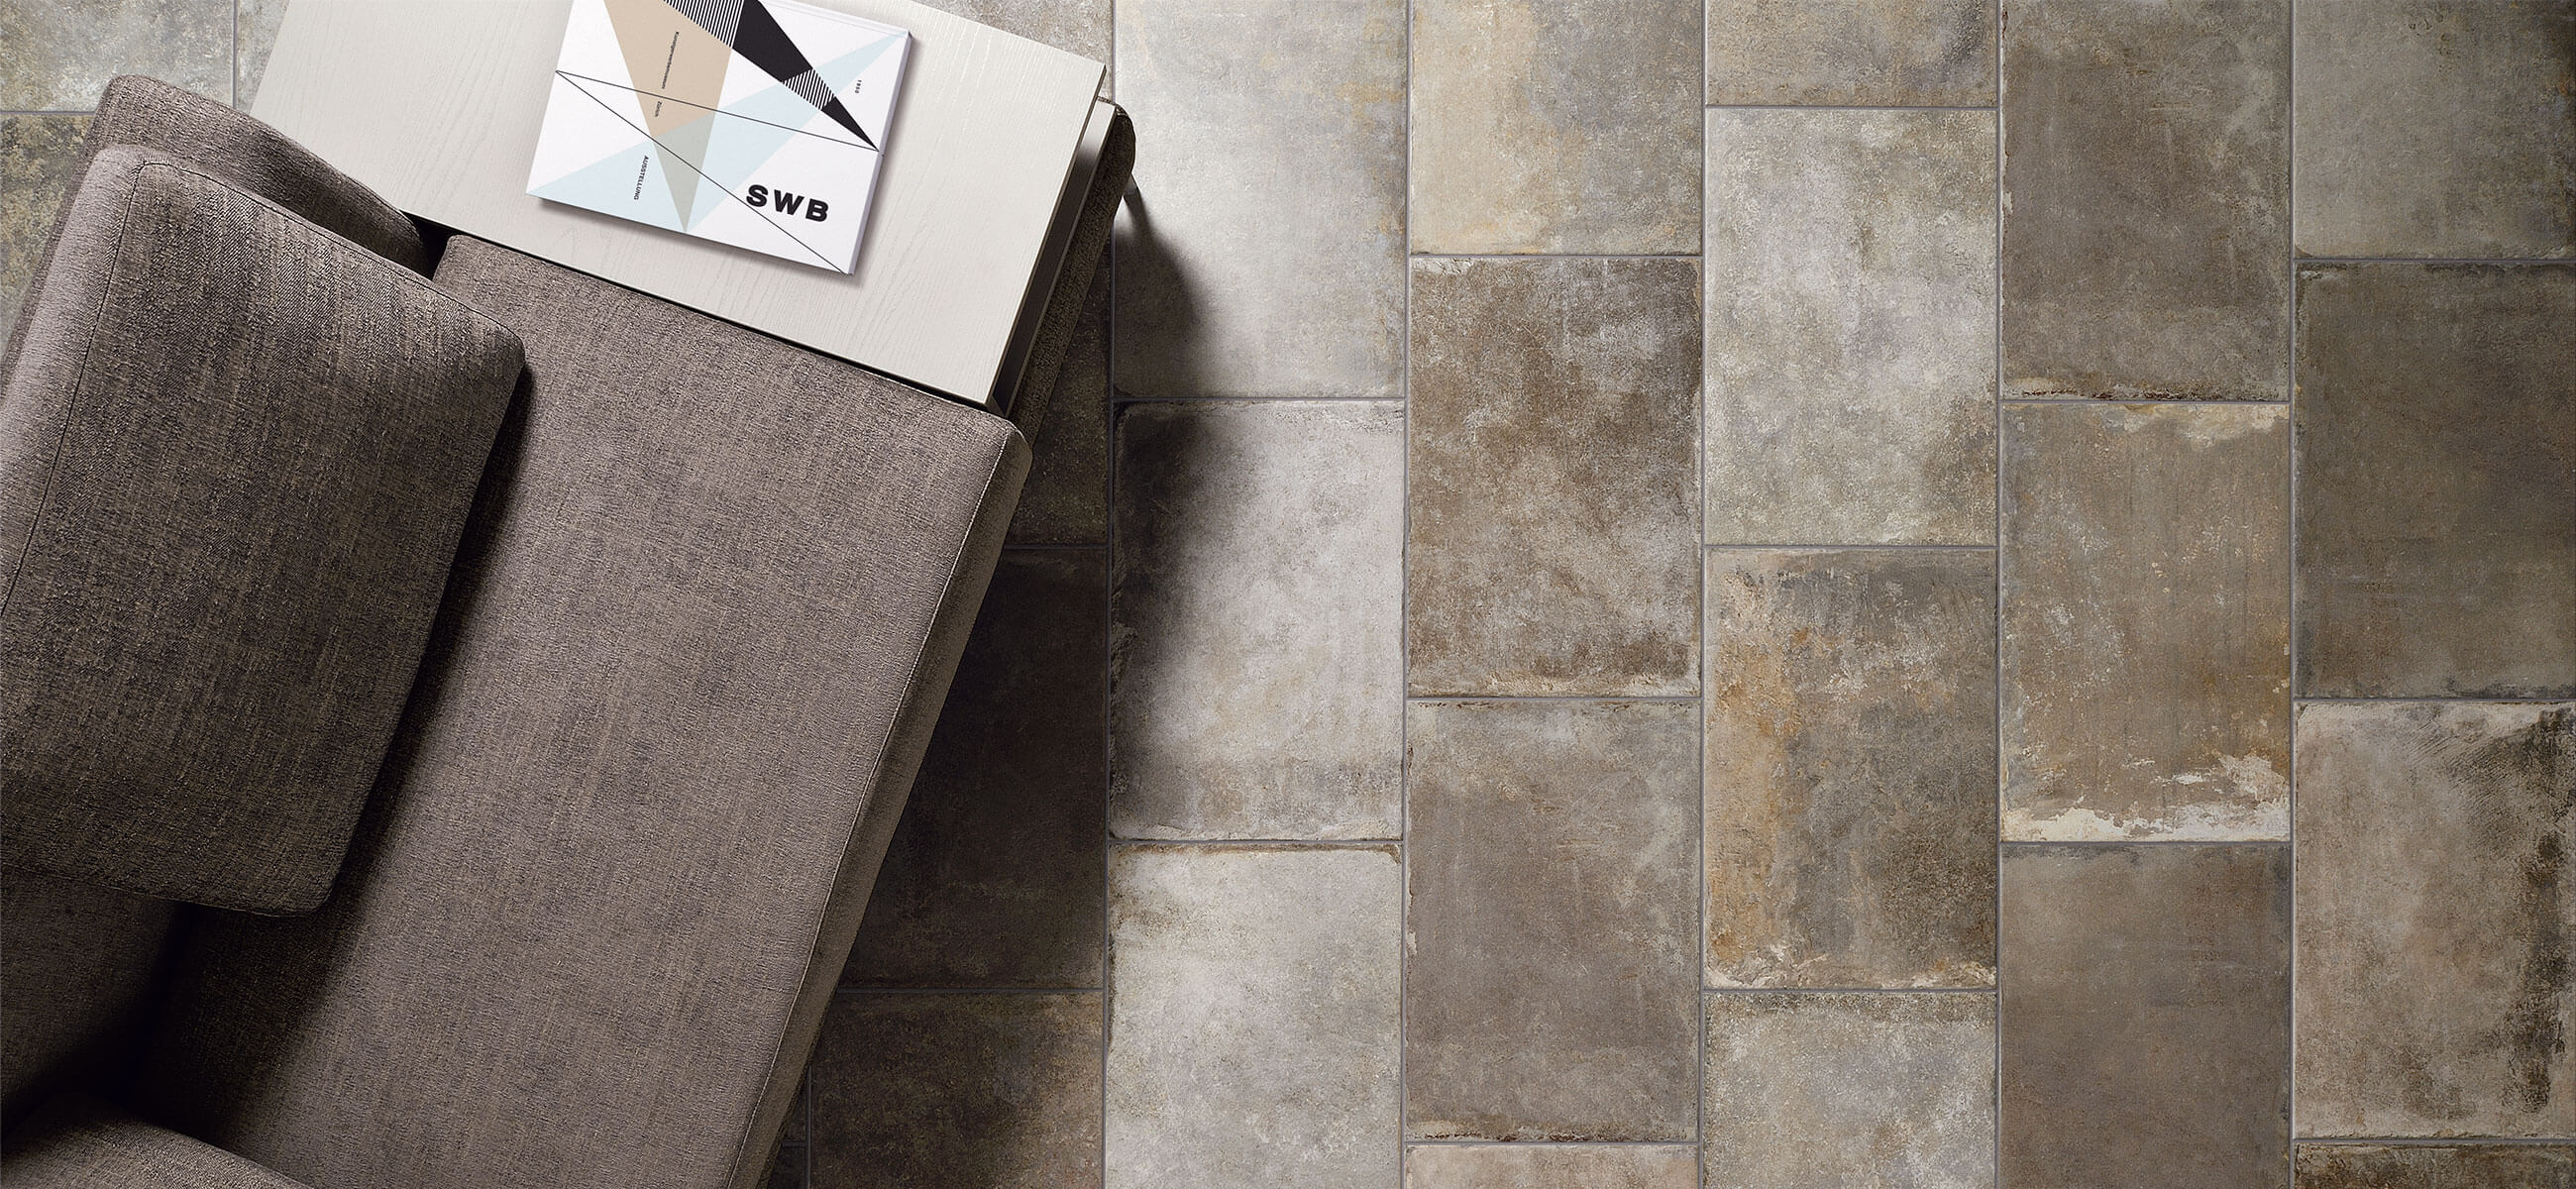 Ceramiche Coem | Porcelain stoneware tiles for floors and walls